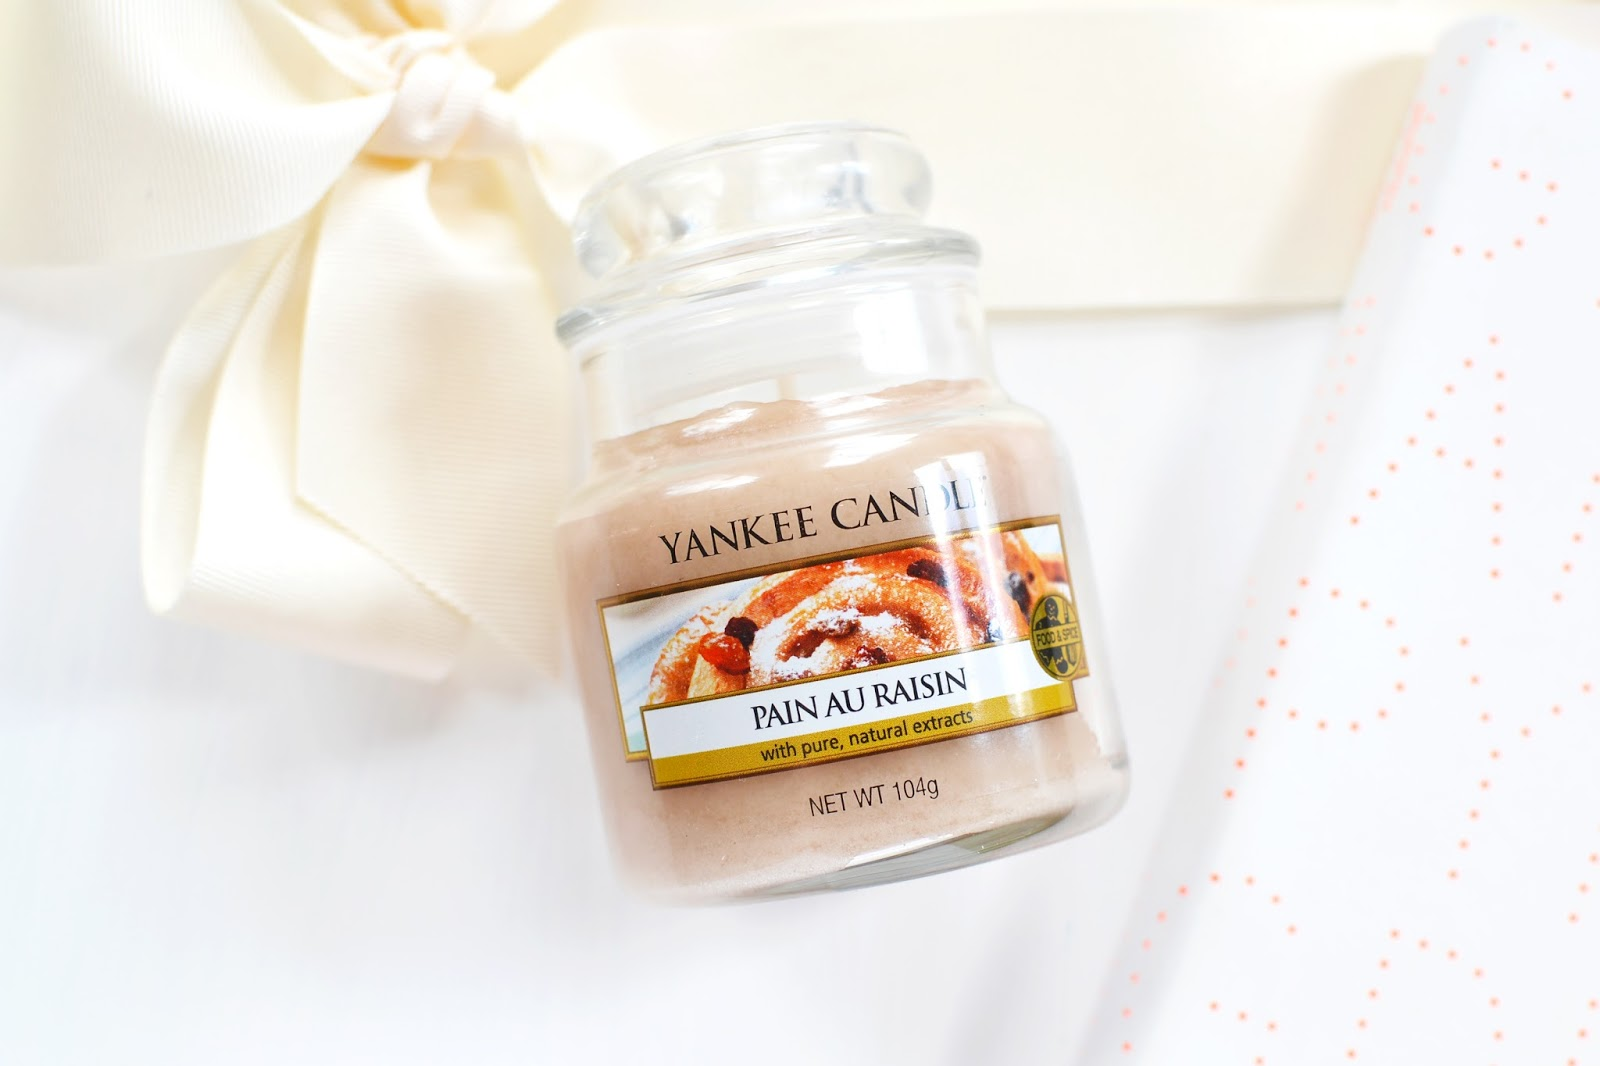 Pain au Raisin Scented Candle from Yankee Candle Cafe Culture